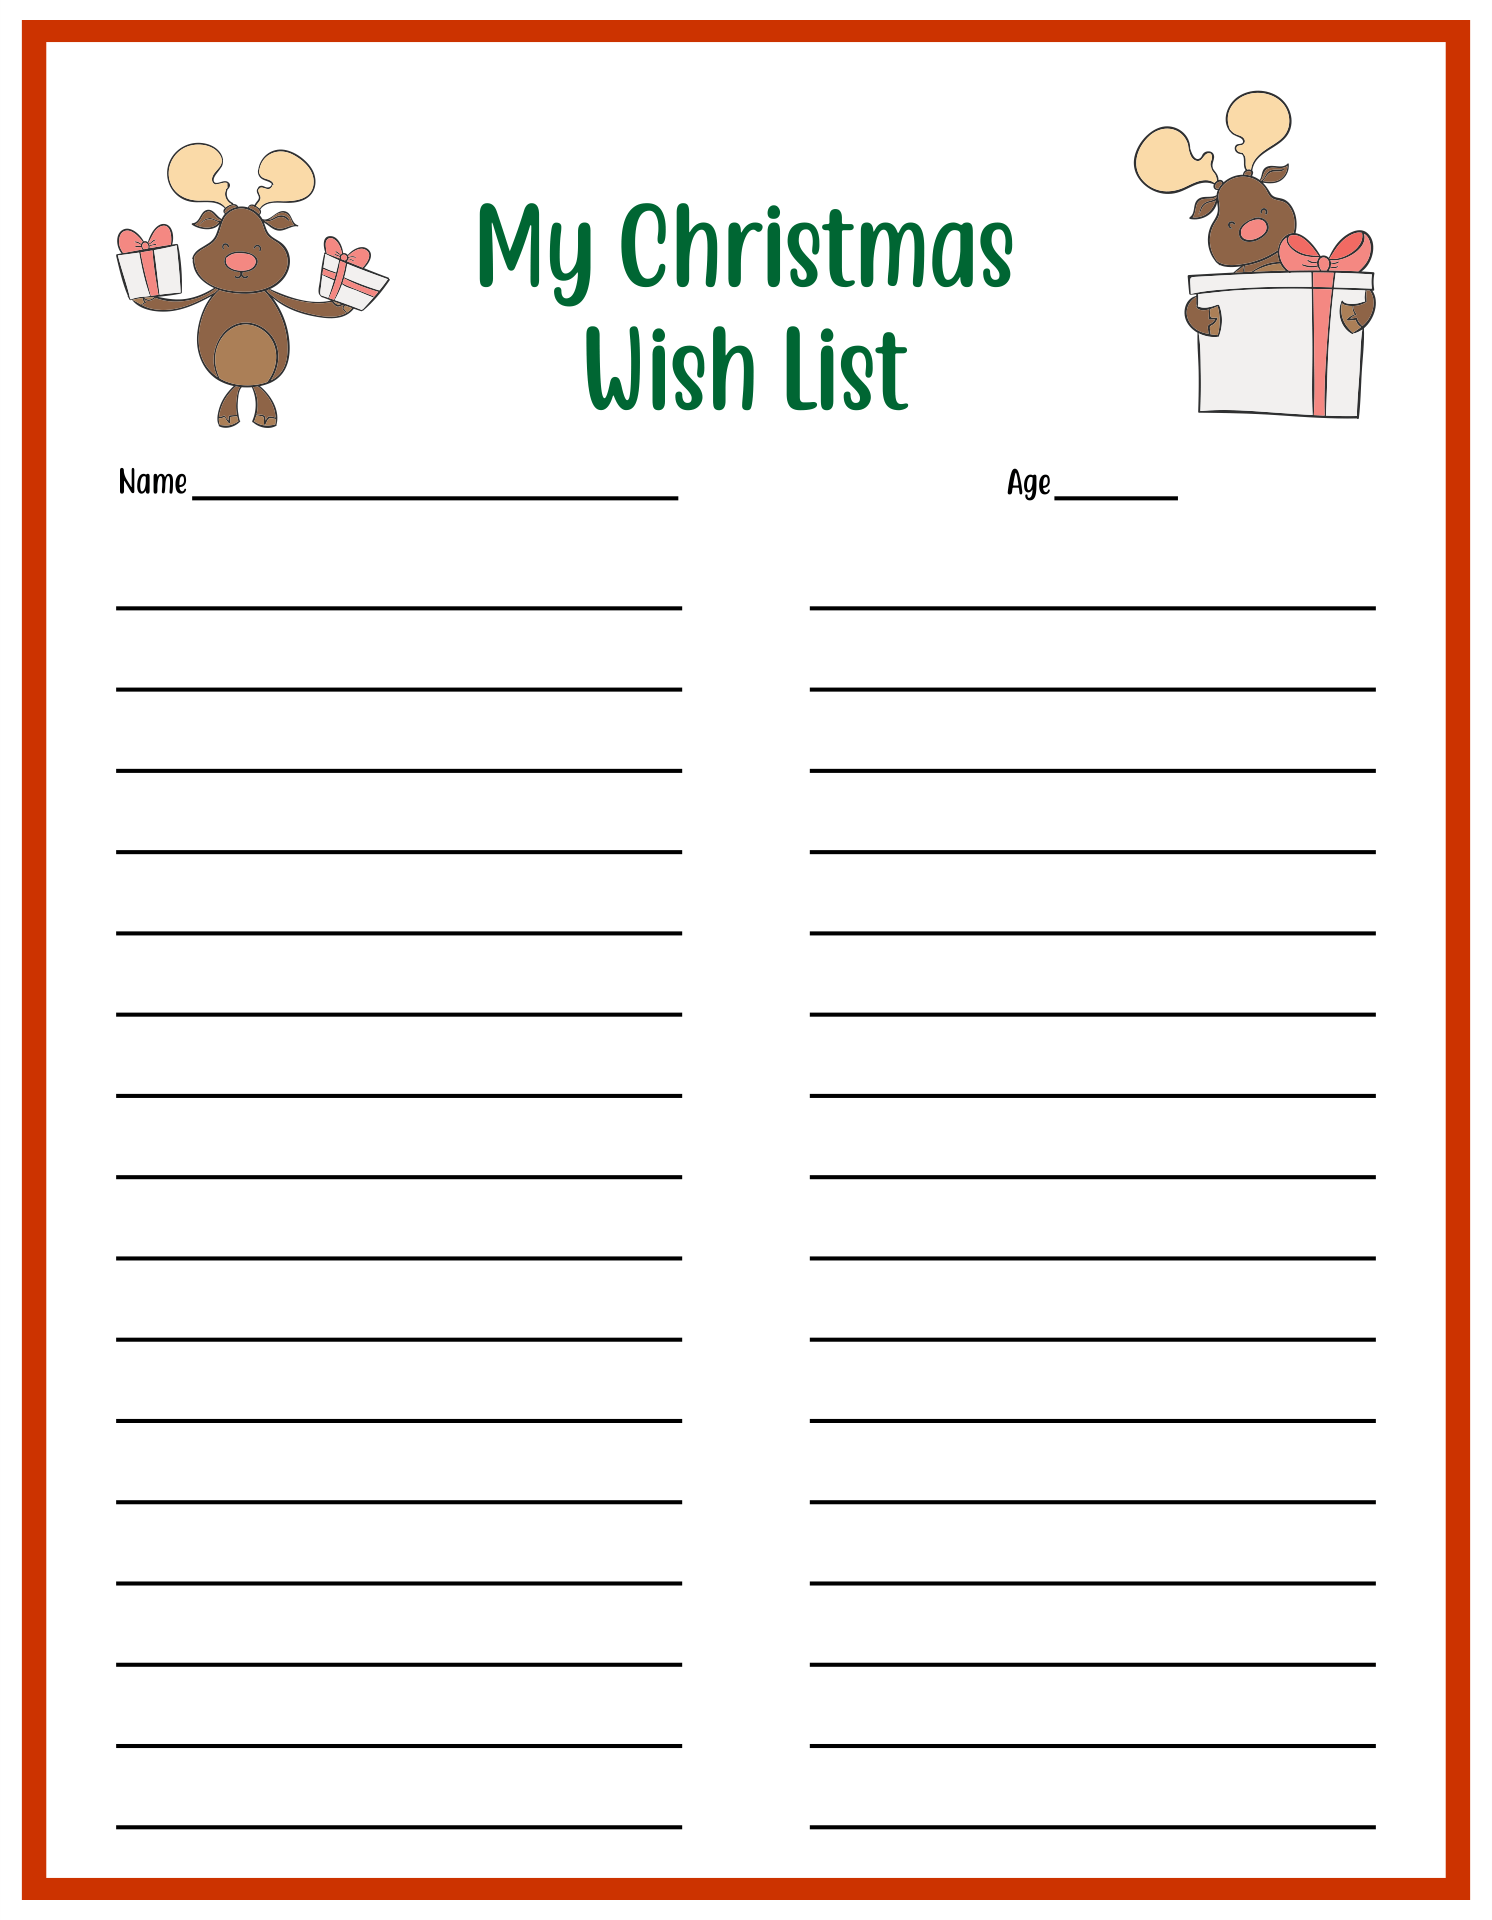 Wish List Templates phone number list template free printable – Free Printable Christmas Wish List Template